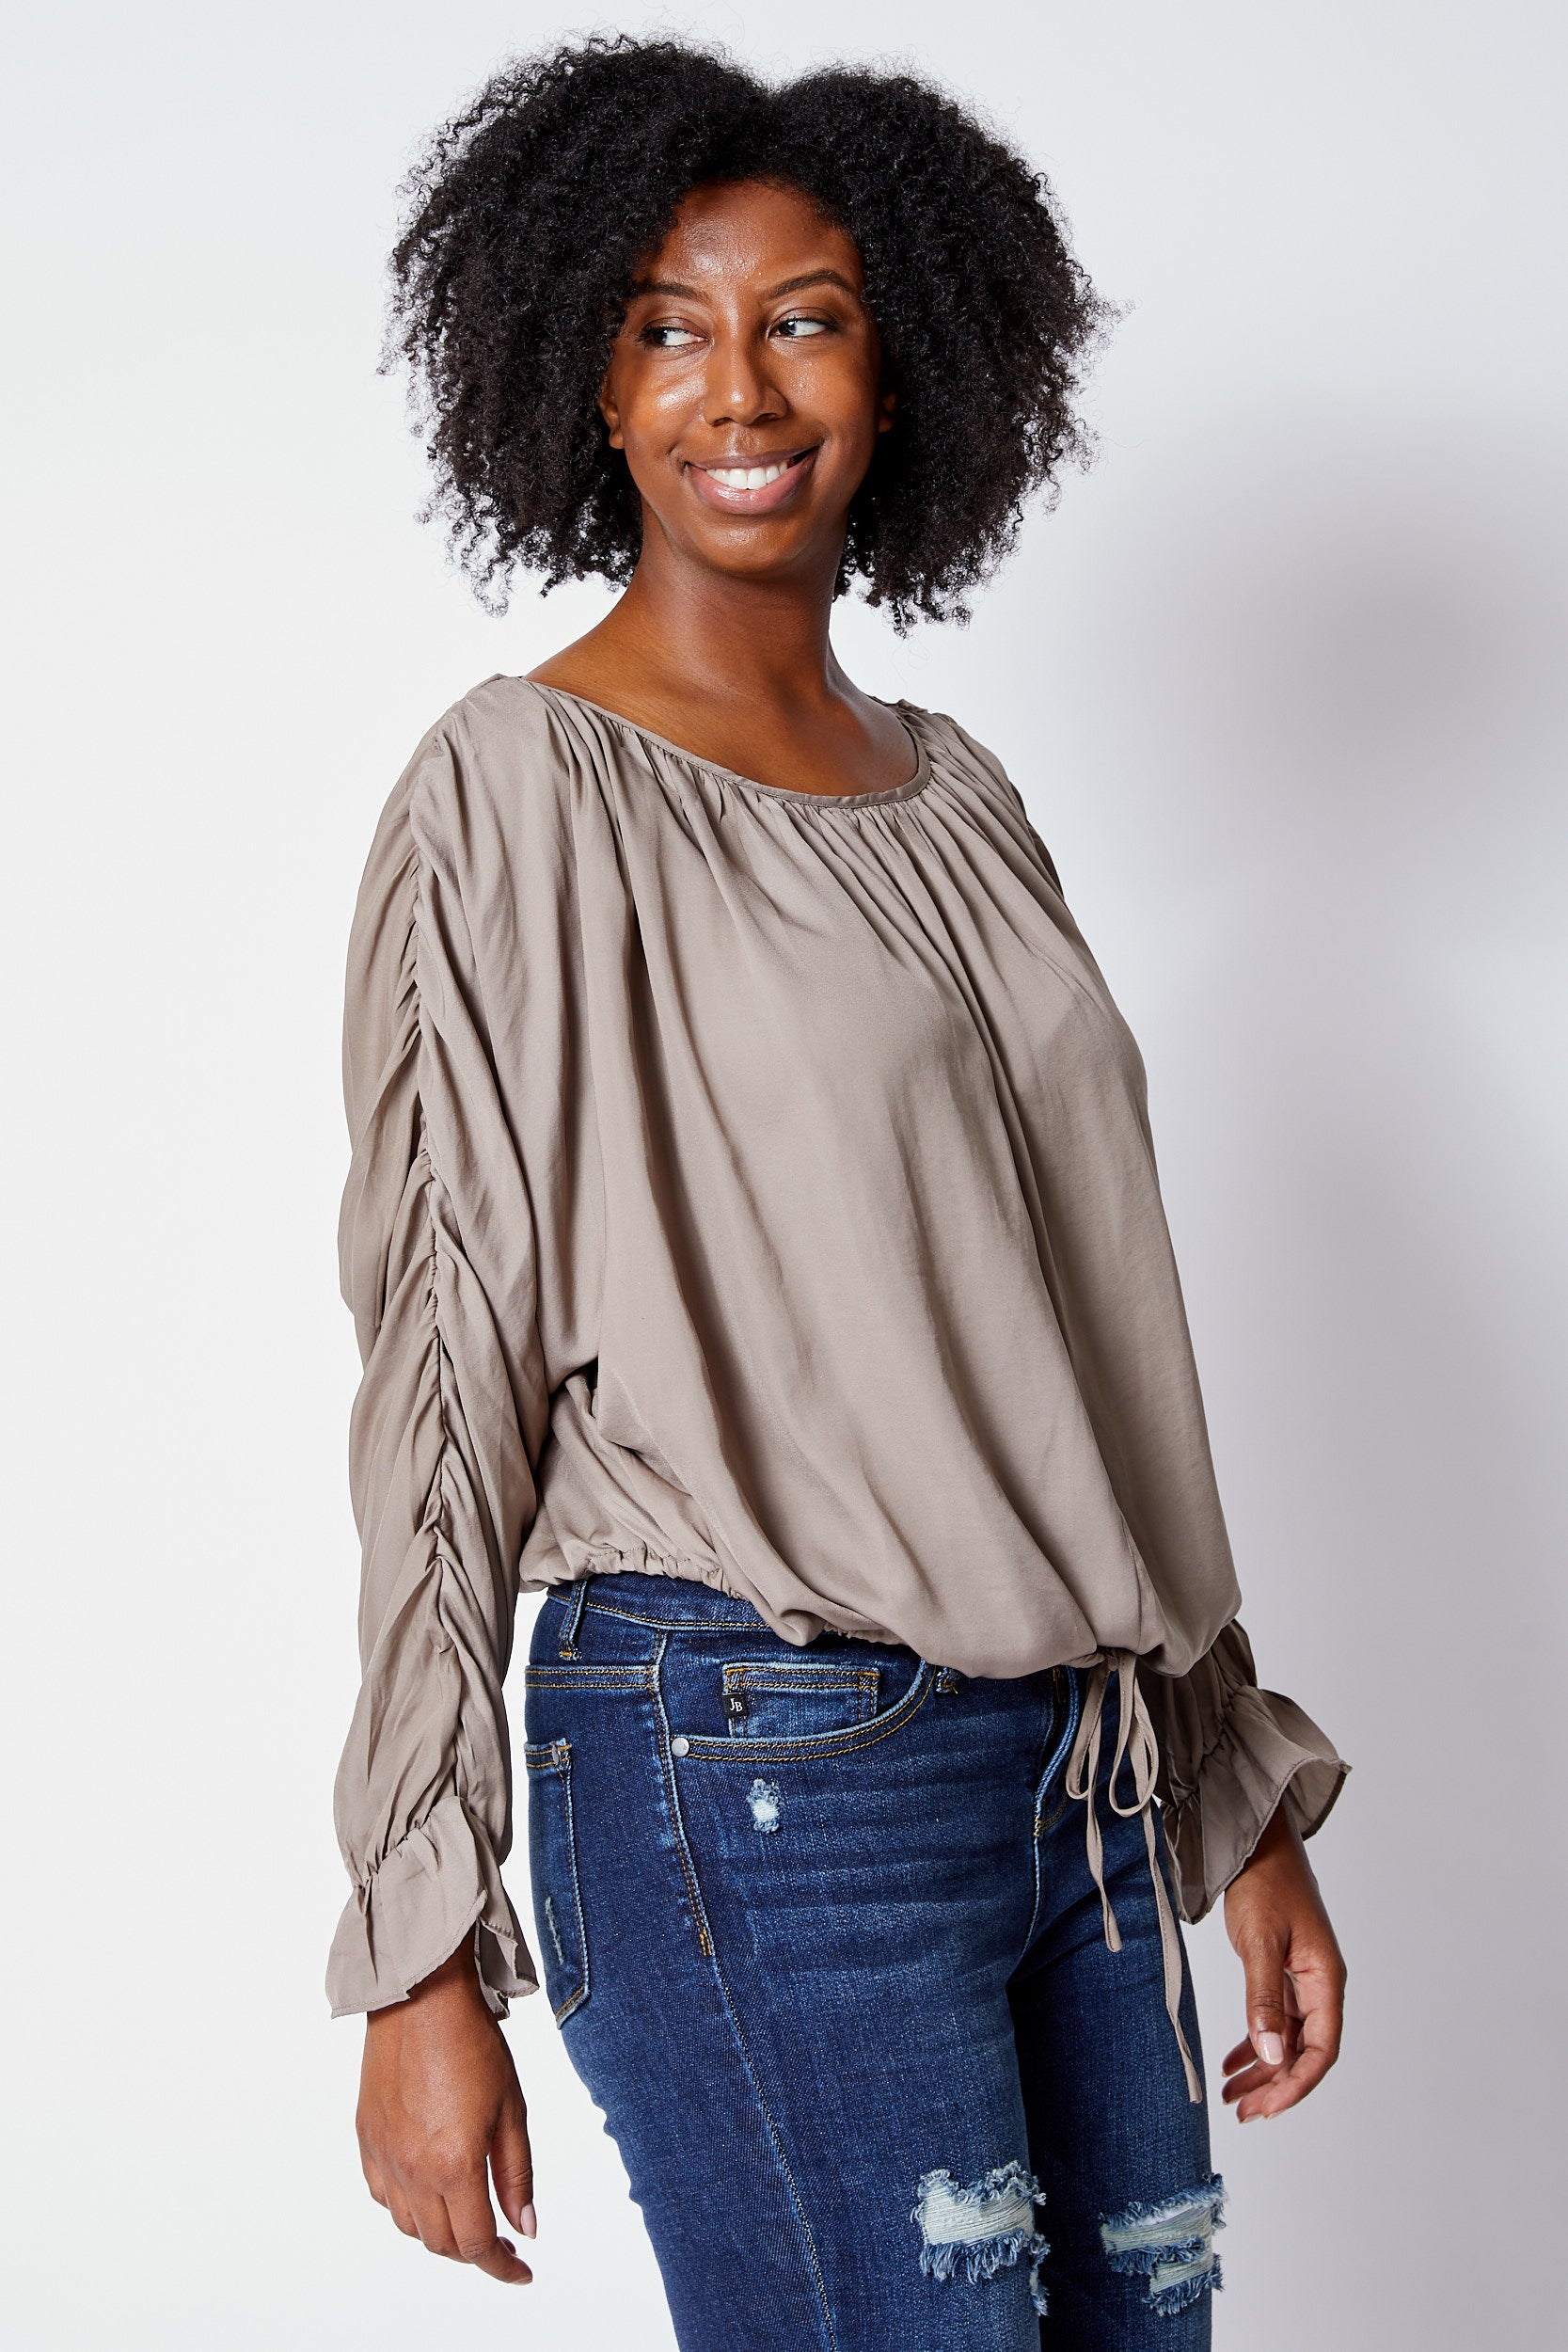 Gathered Sleeve Blouse - Jacqueline B Clothing